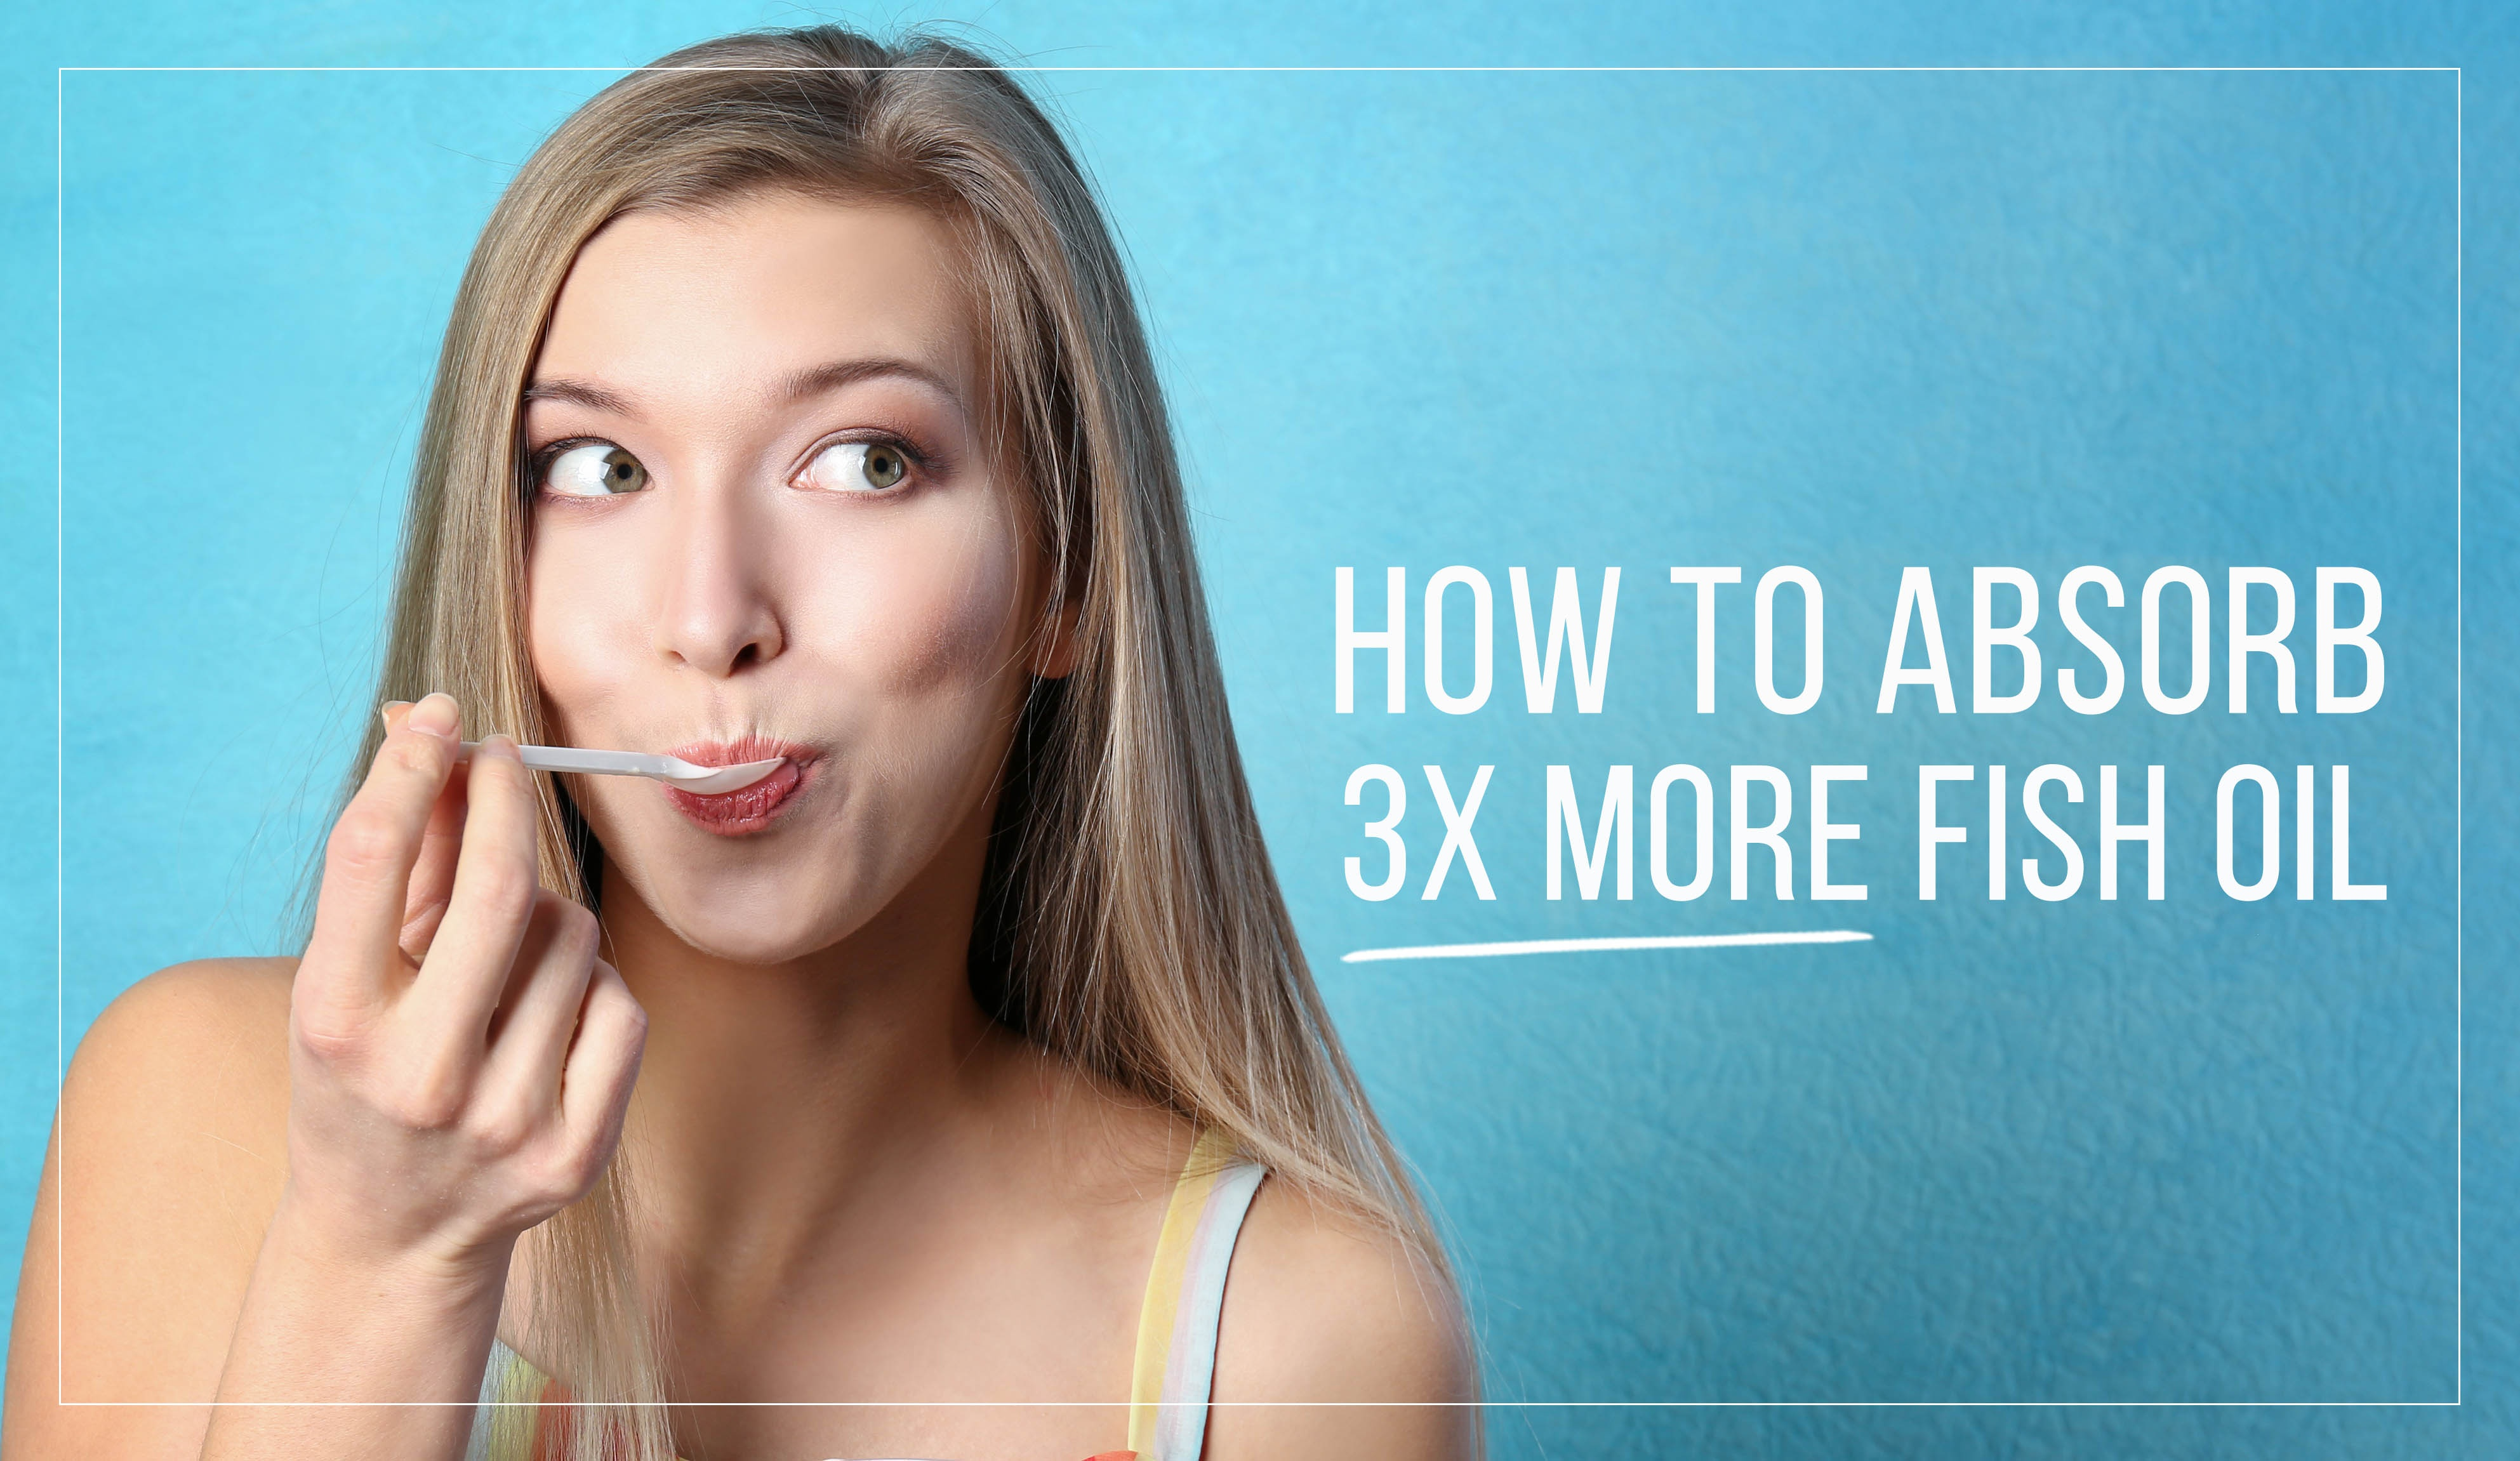 How to Absorb 3X More Fish Oil